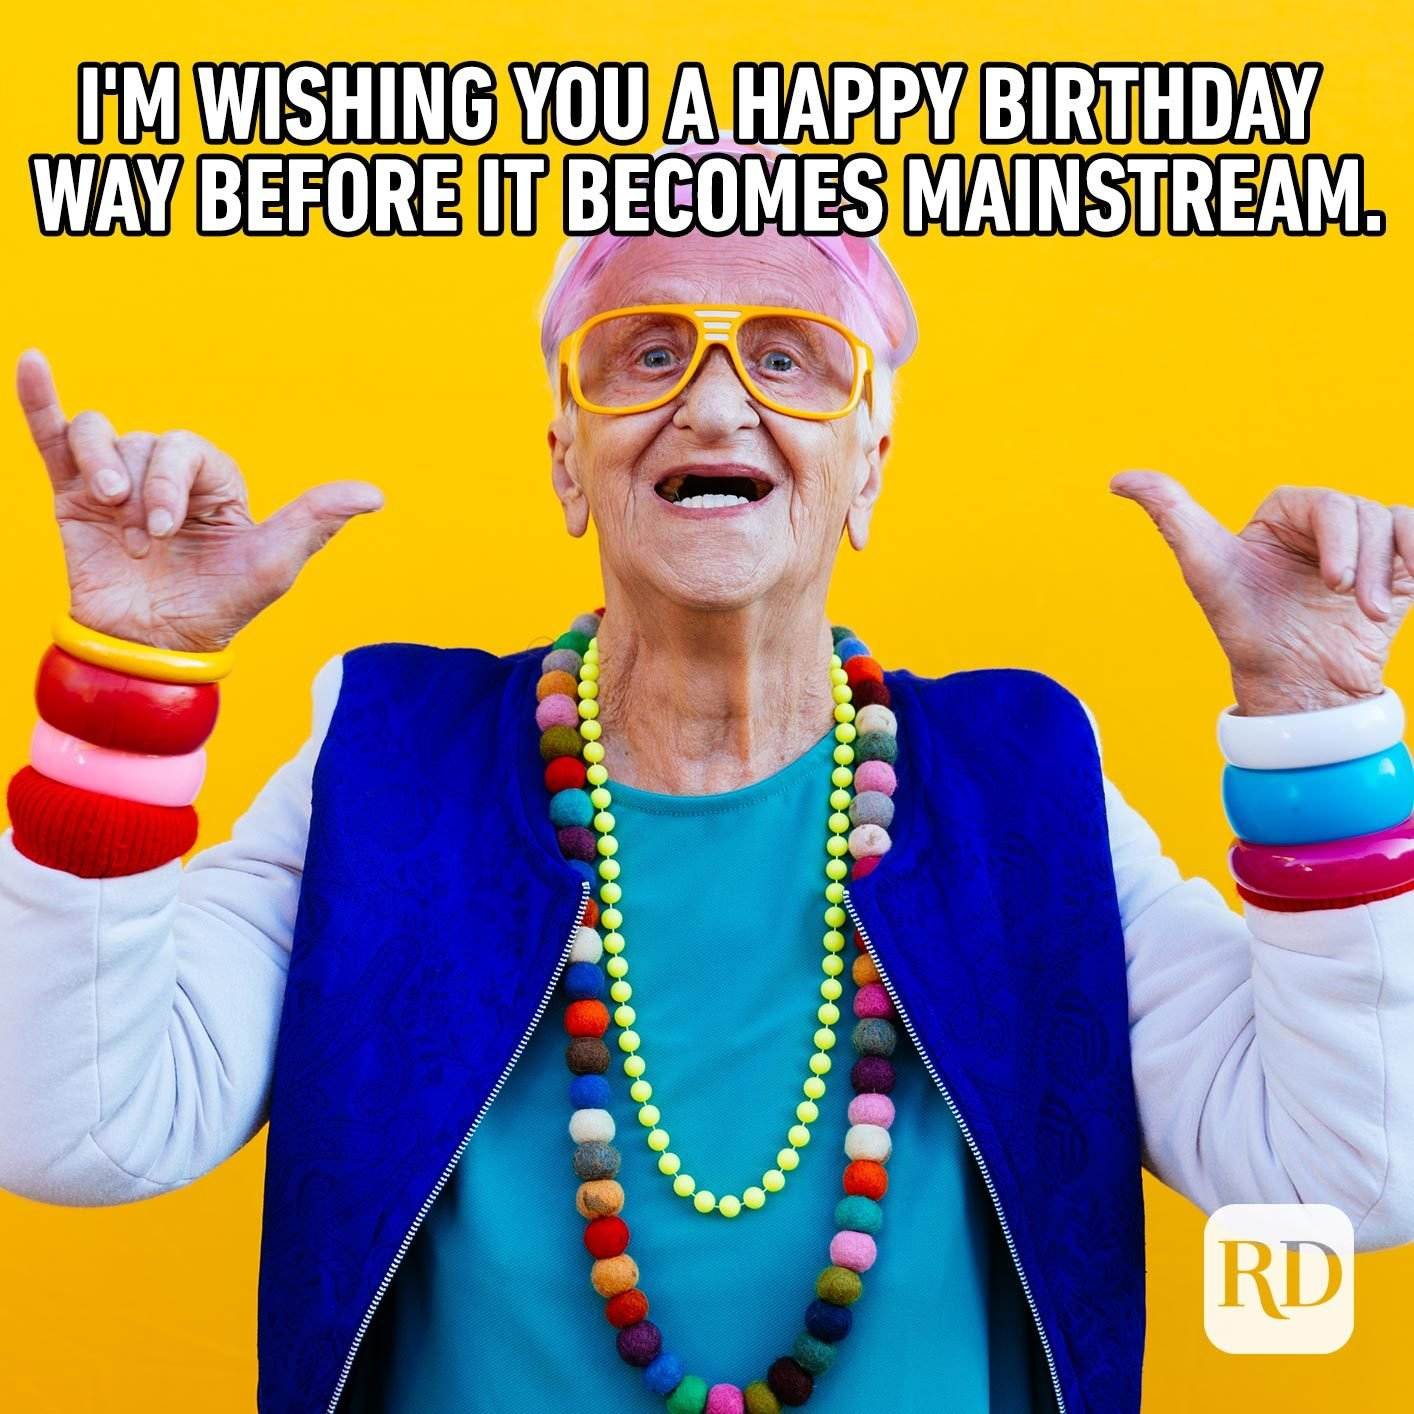 I'm wishing you a happy birthday way before it becomes mainstream.